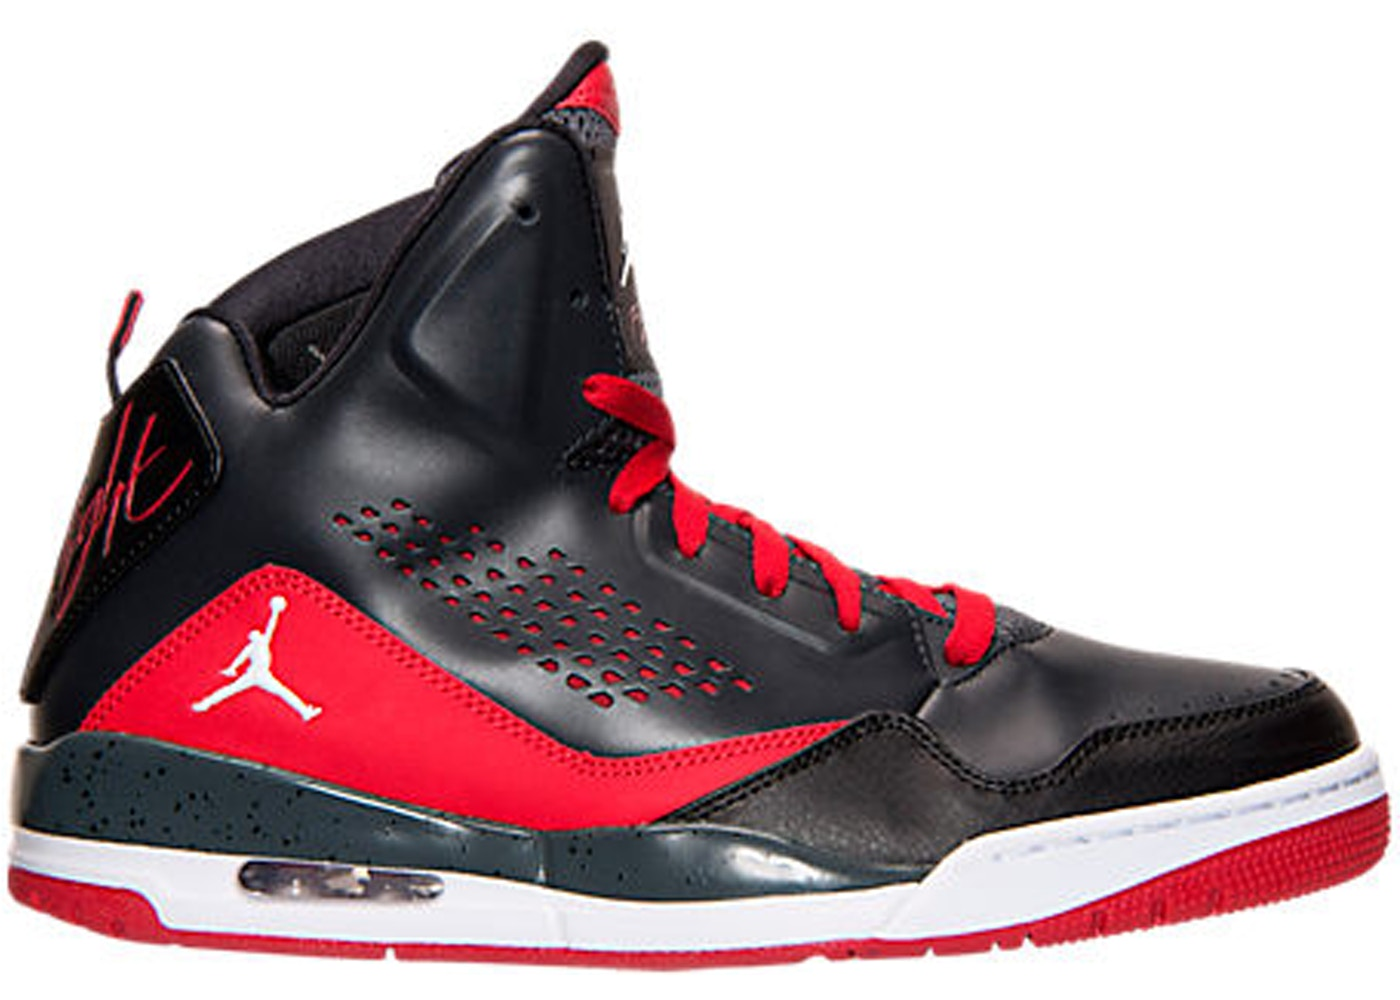 c362174f12384 Jordan SC-3 Anthracite Black Red - 629877-012